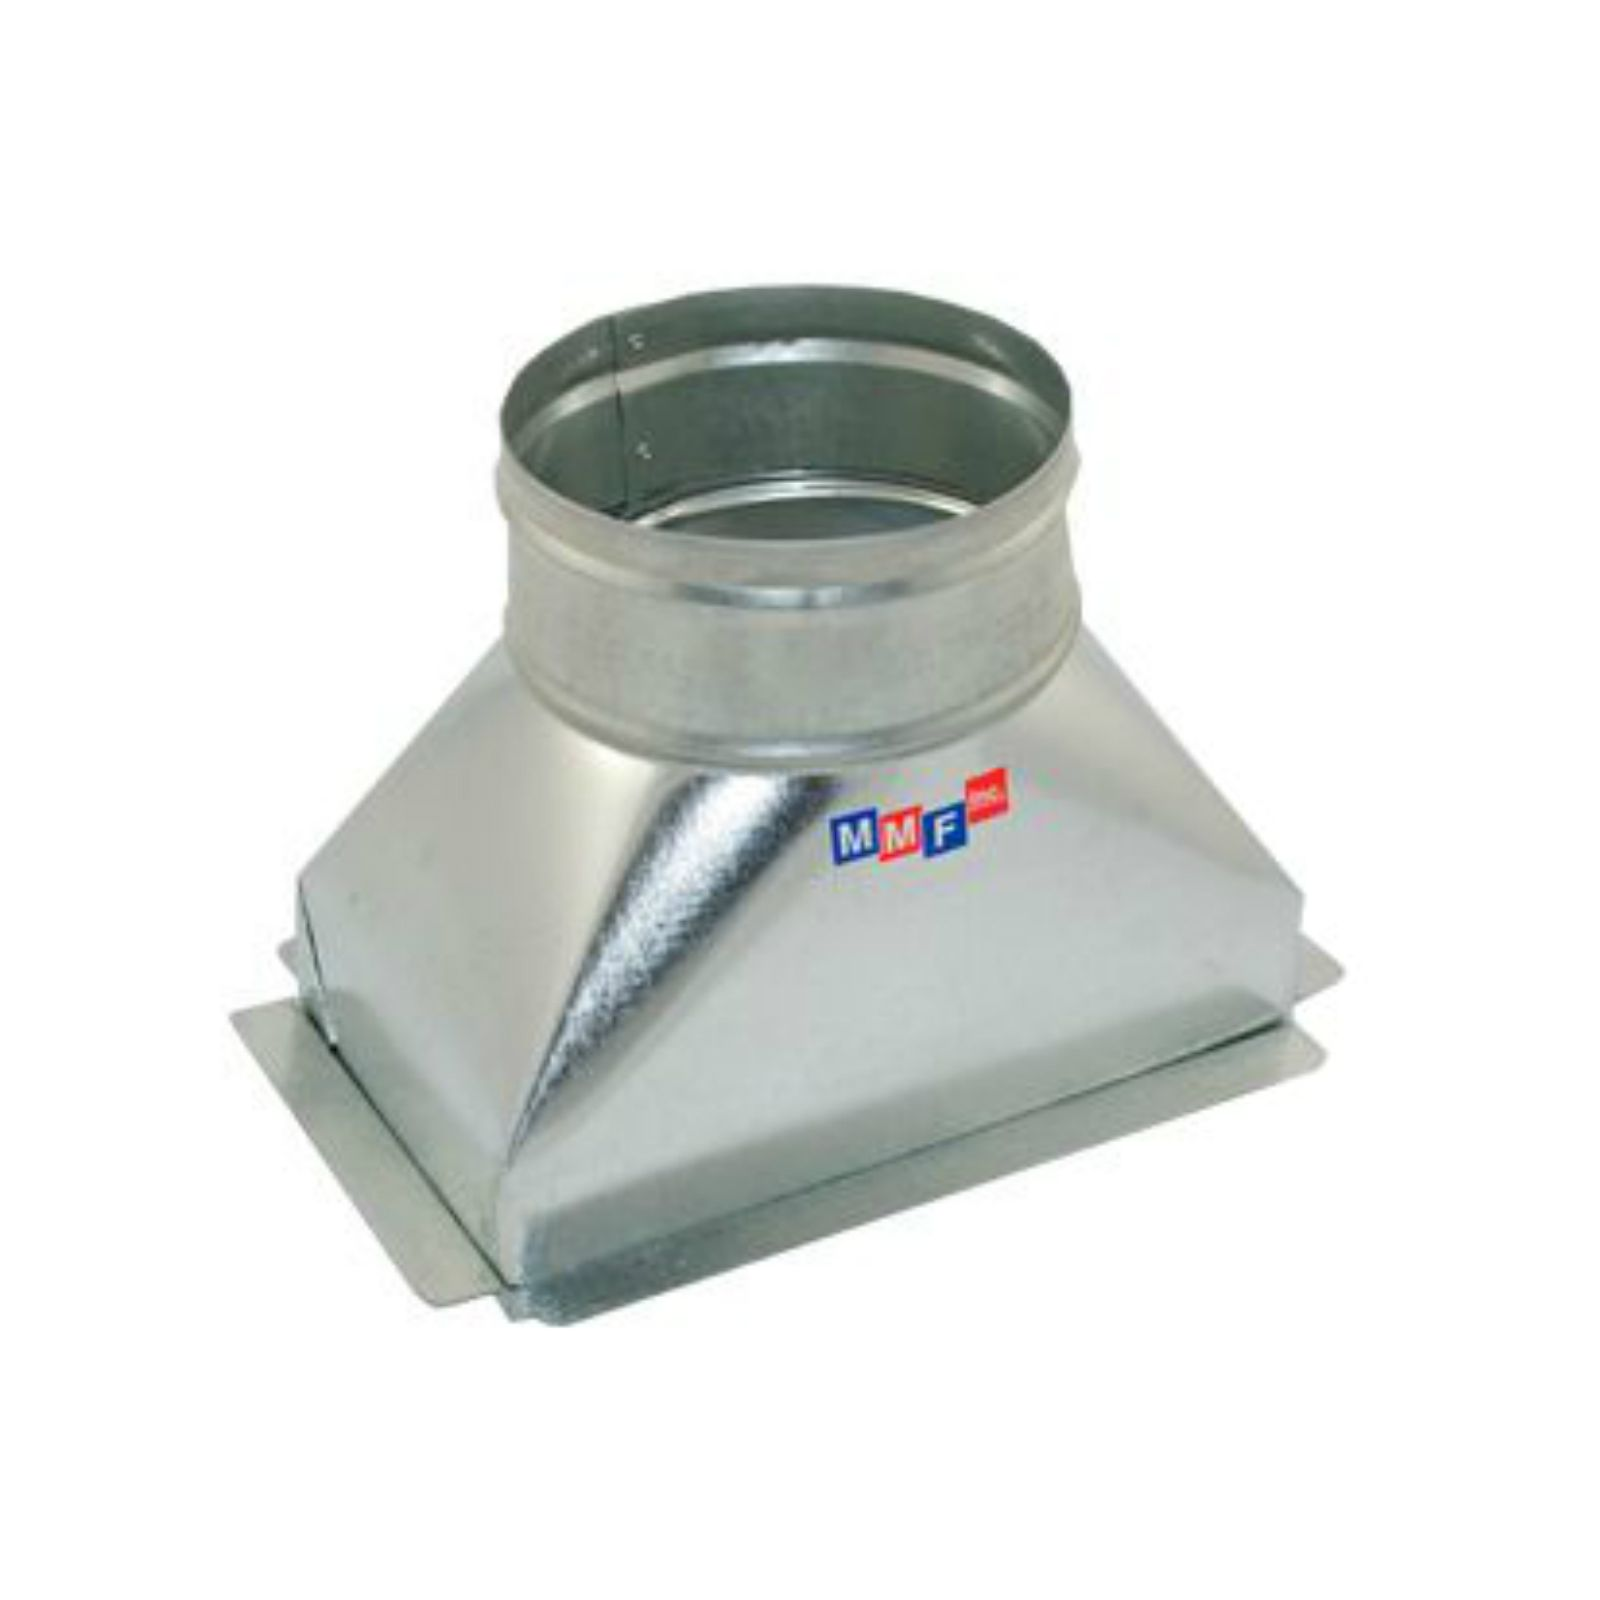 "Modular Metal BTSFG080606P - Sealed Floor Box - 30 Gauge - With Plaster Ground Flange 08"" X 06"" To 06"" Round - 3"" Straight"